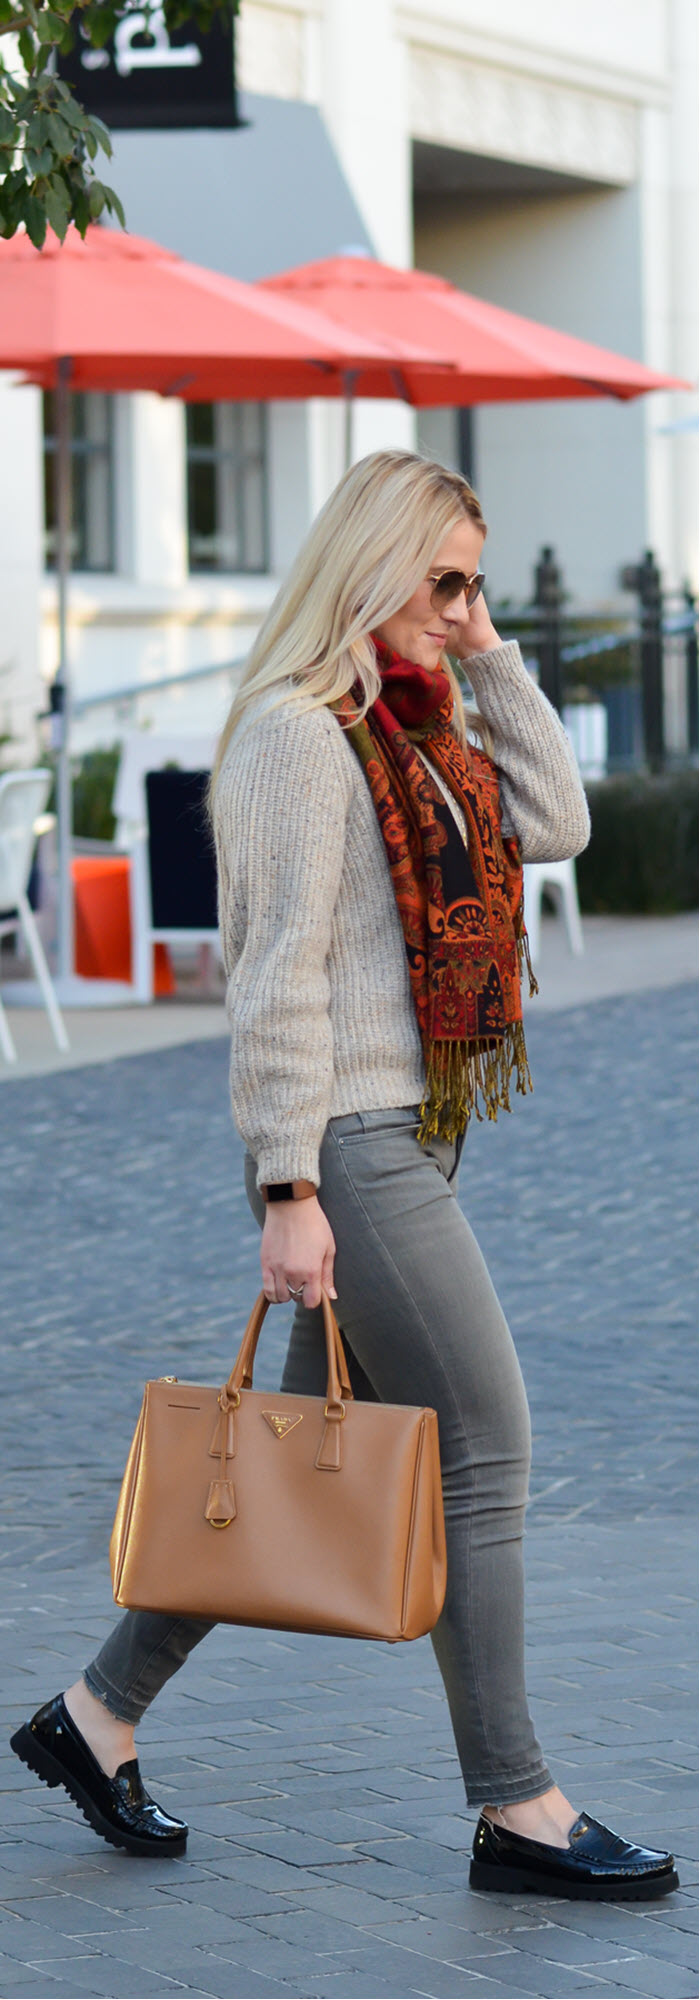 What to Wear with Grey Jeans Outfit with Sweater #fashionblog #fashionblogger #lablogger #fallfashion #fallstyle #winterfashion #winterstyle #jeans #greyjeans #scarves #ootd #bloggerstyle #outfitideas #prada